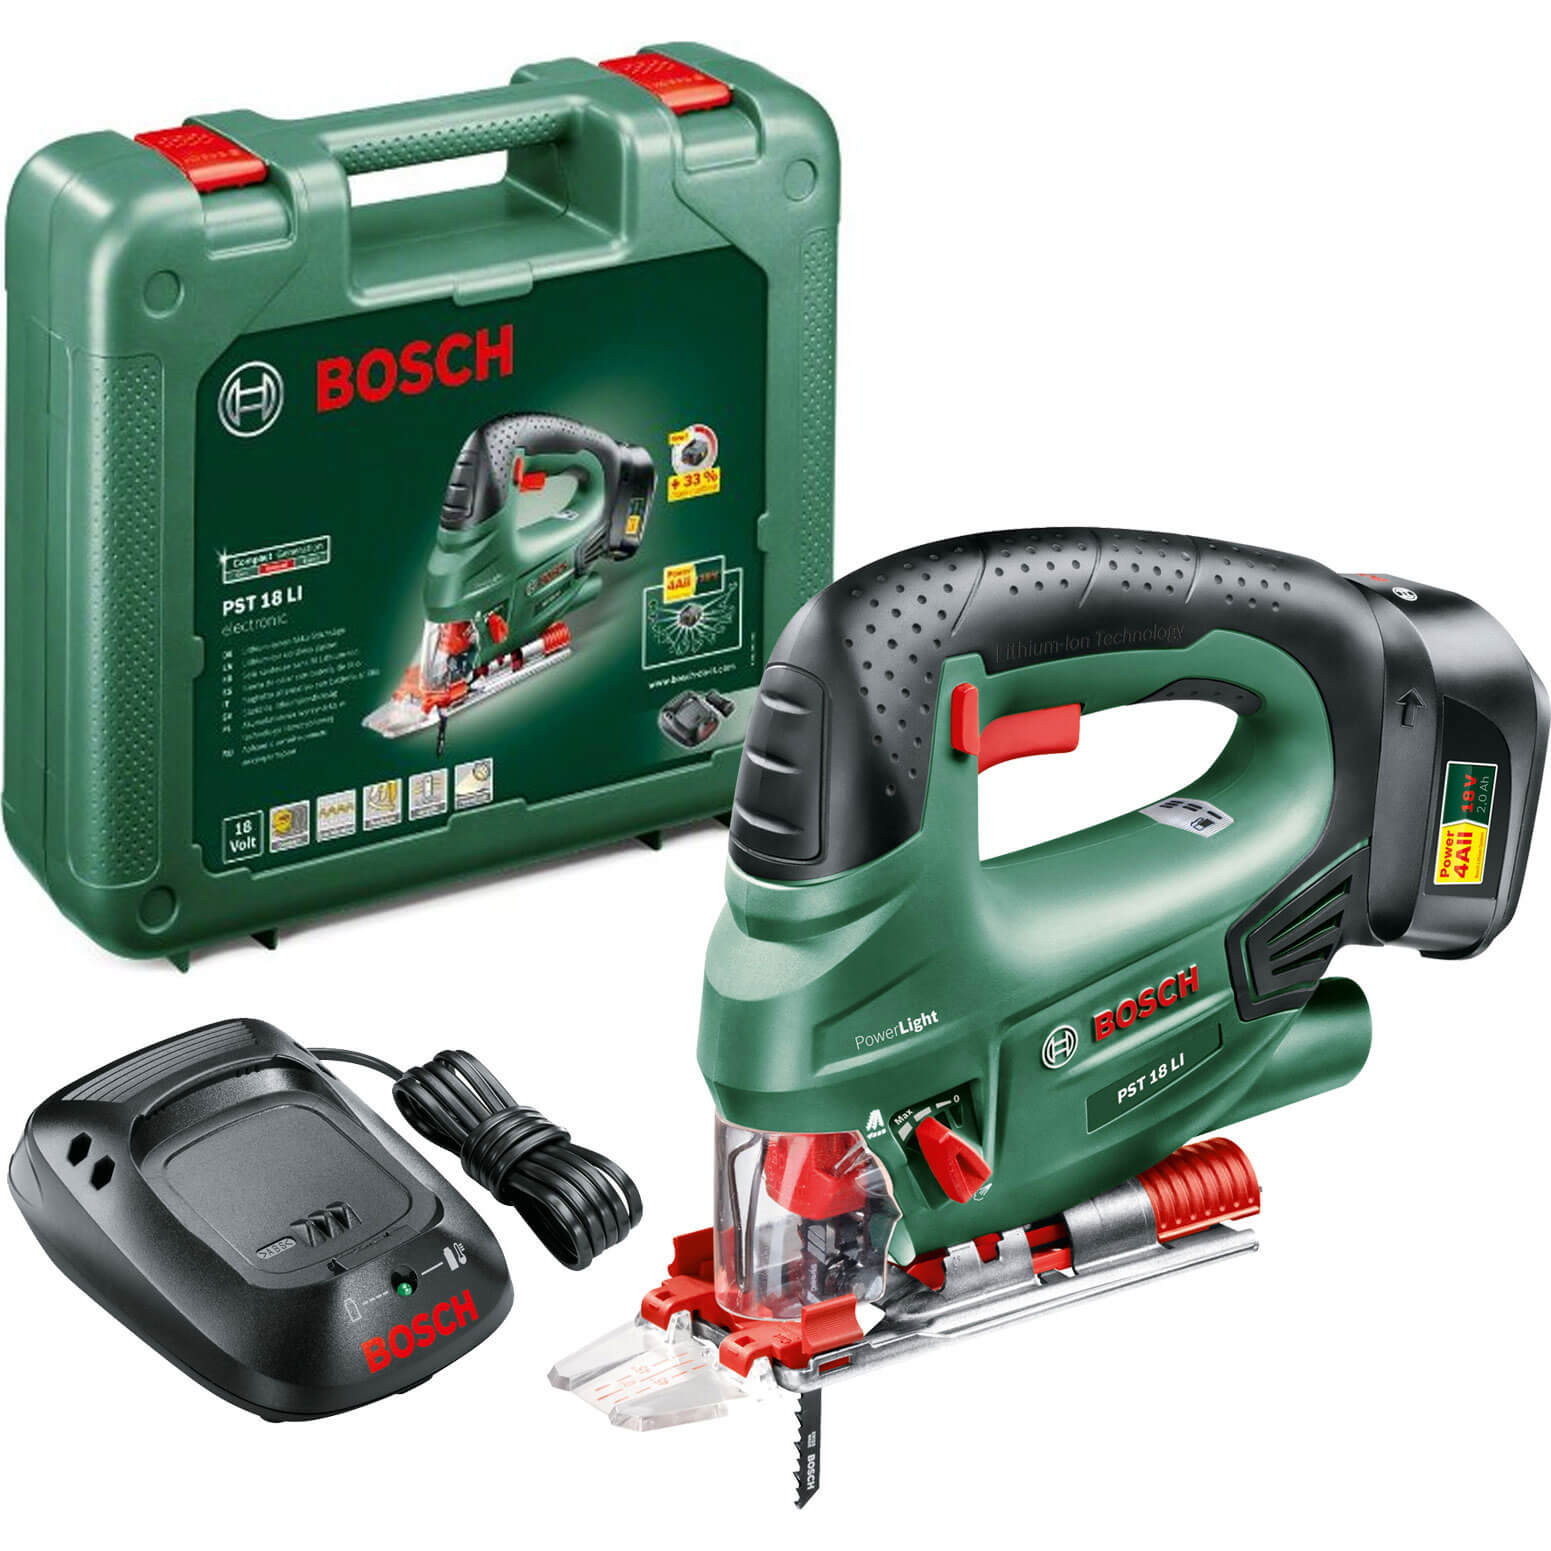 Bosch POWER4ALL PST 18 LI 18v Cordless Jigsaw with 1 Lithium Ion Battery 2ah